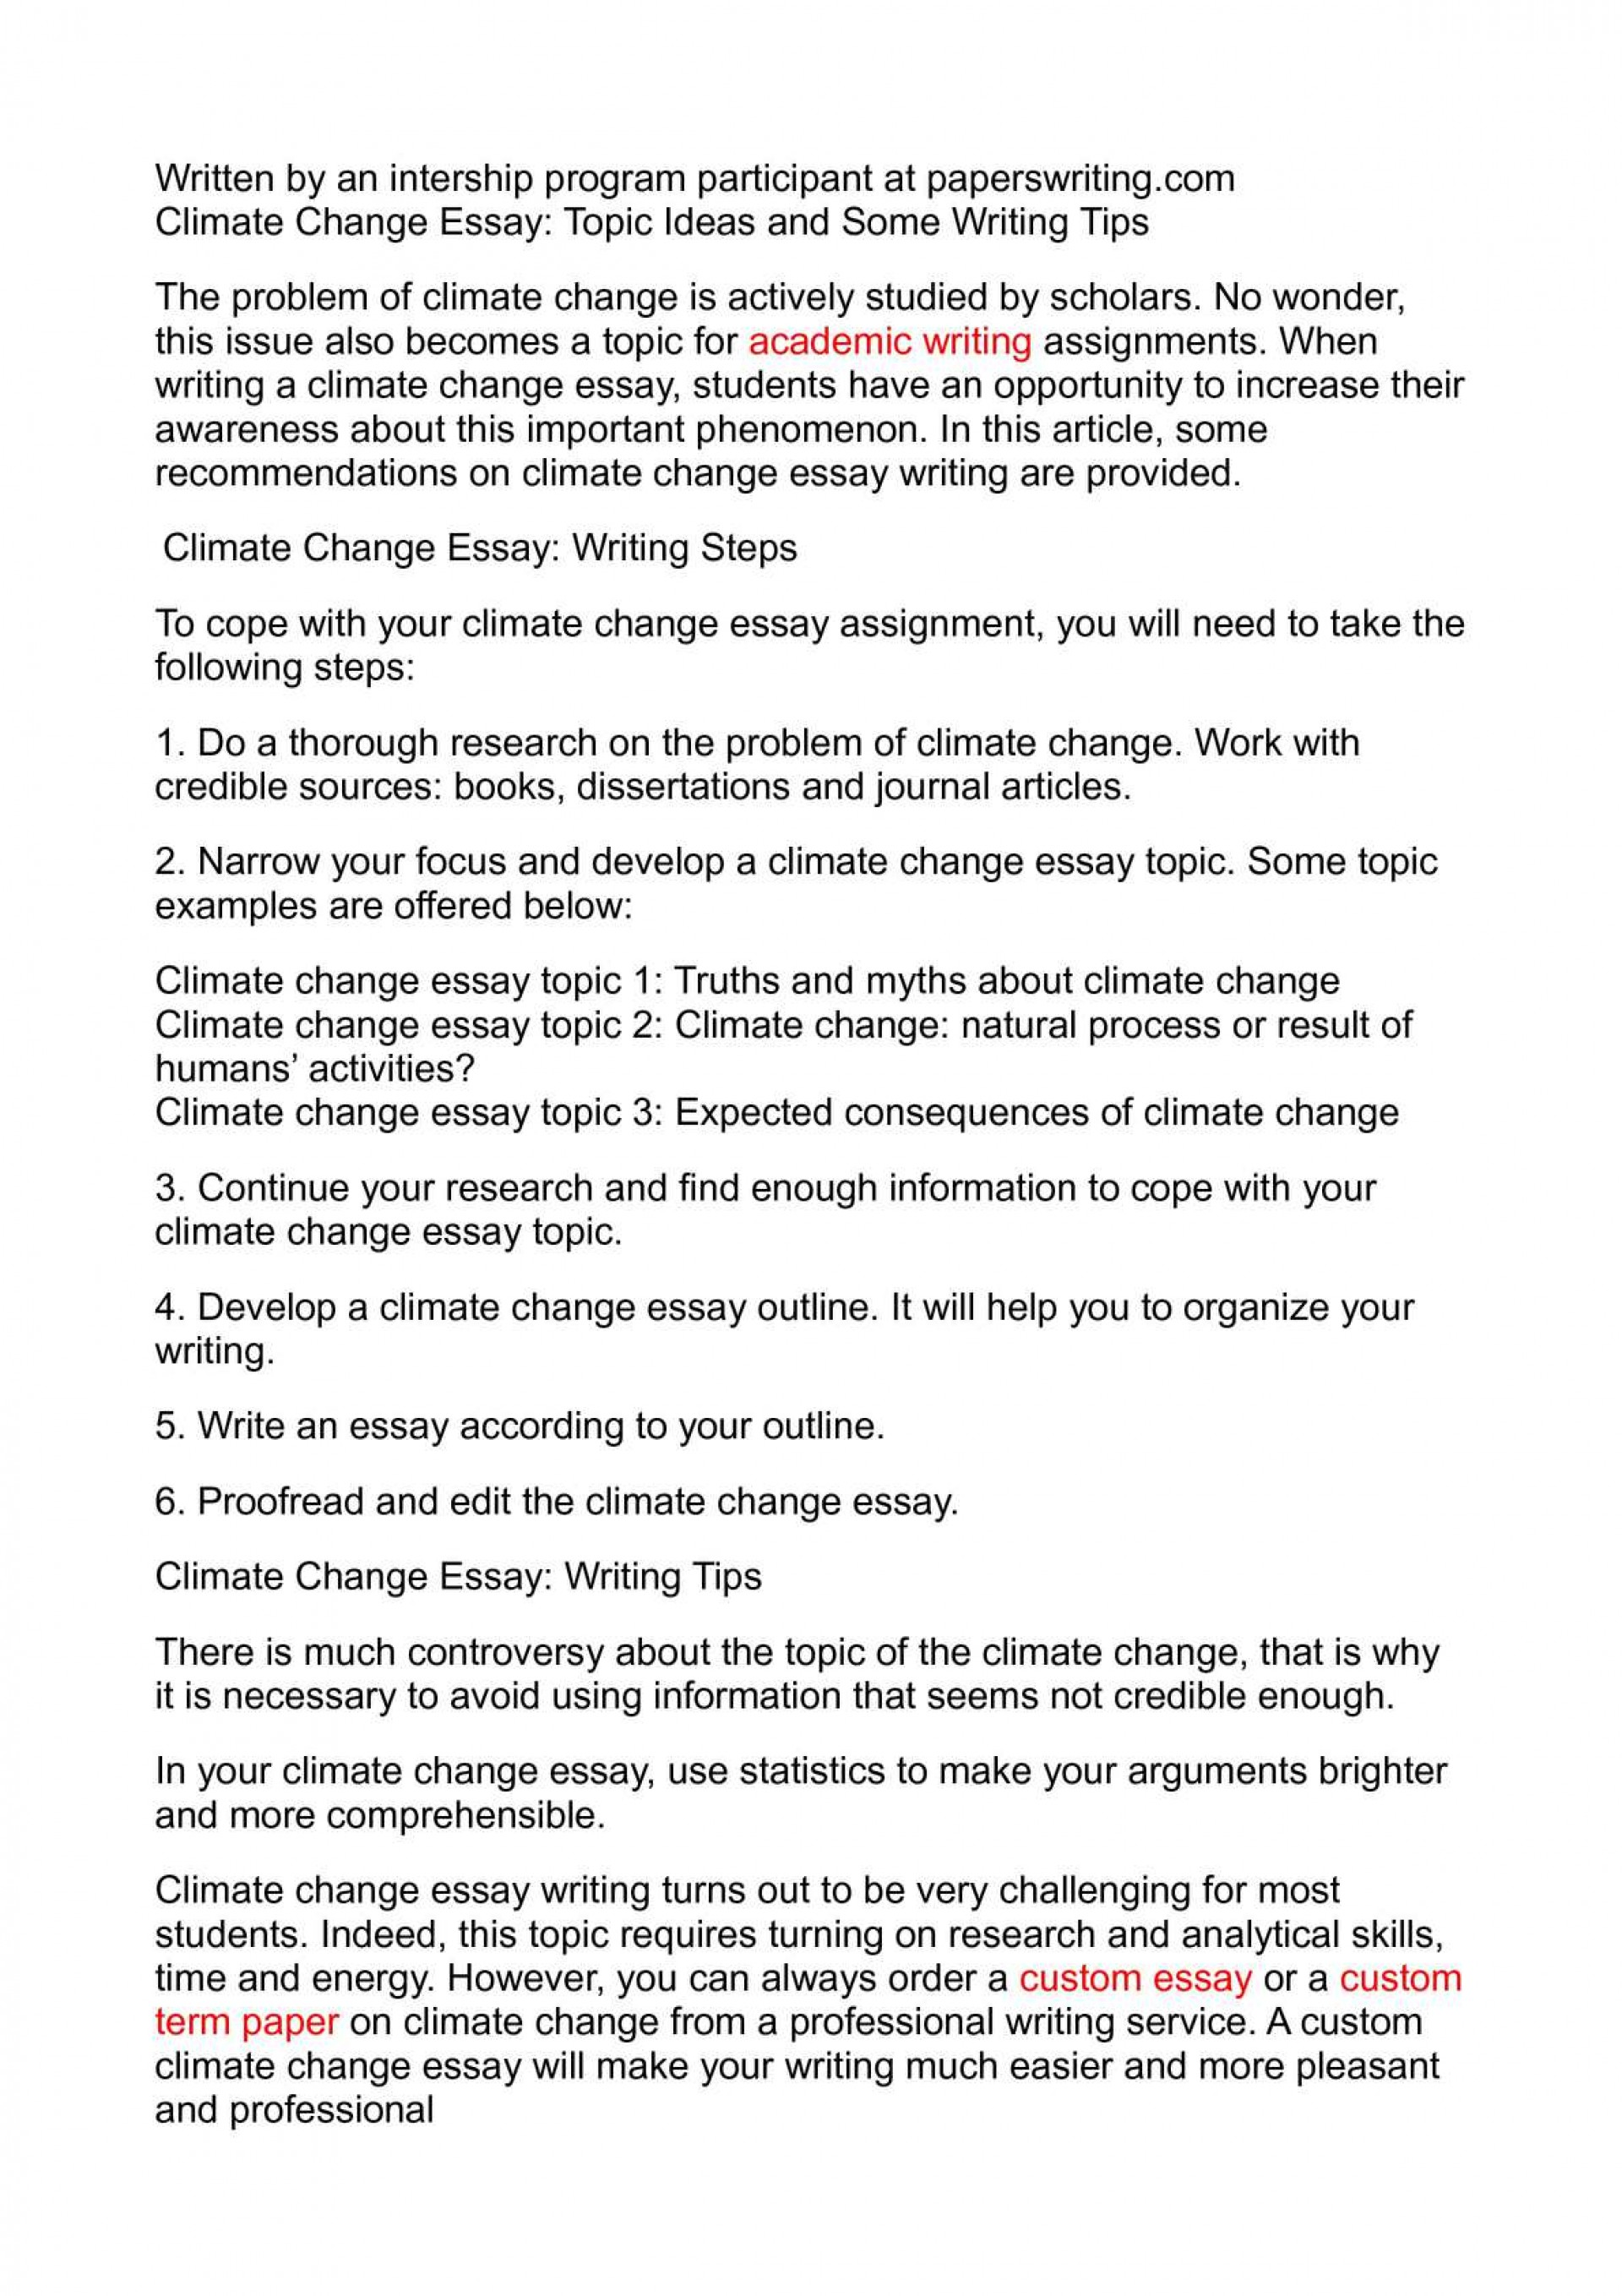 012 Climate Change Essay Topics Uncategorized Global Warming Topic Ways To St Oracleboss Research Paper20 Paper Unusual Ideas For Developmental Psychology Unique High School American History 1920